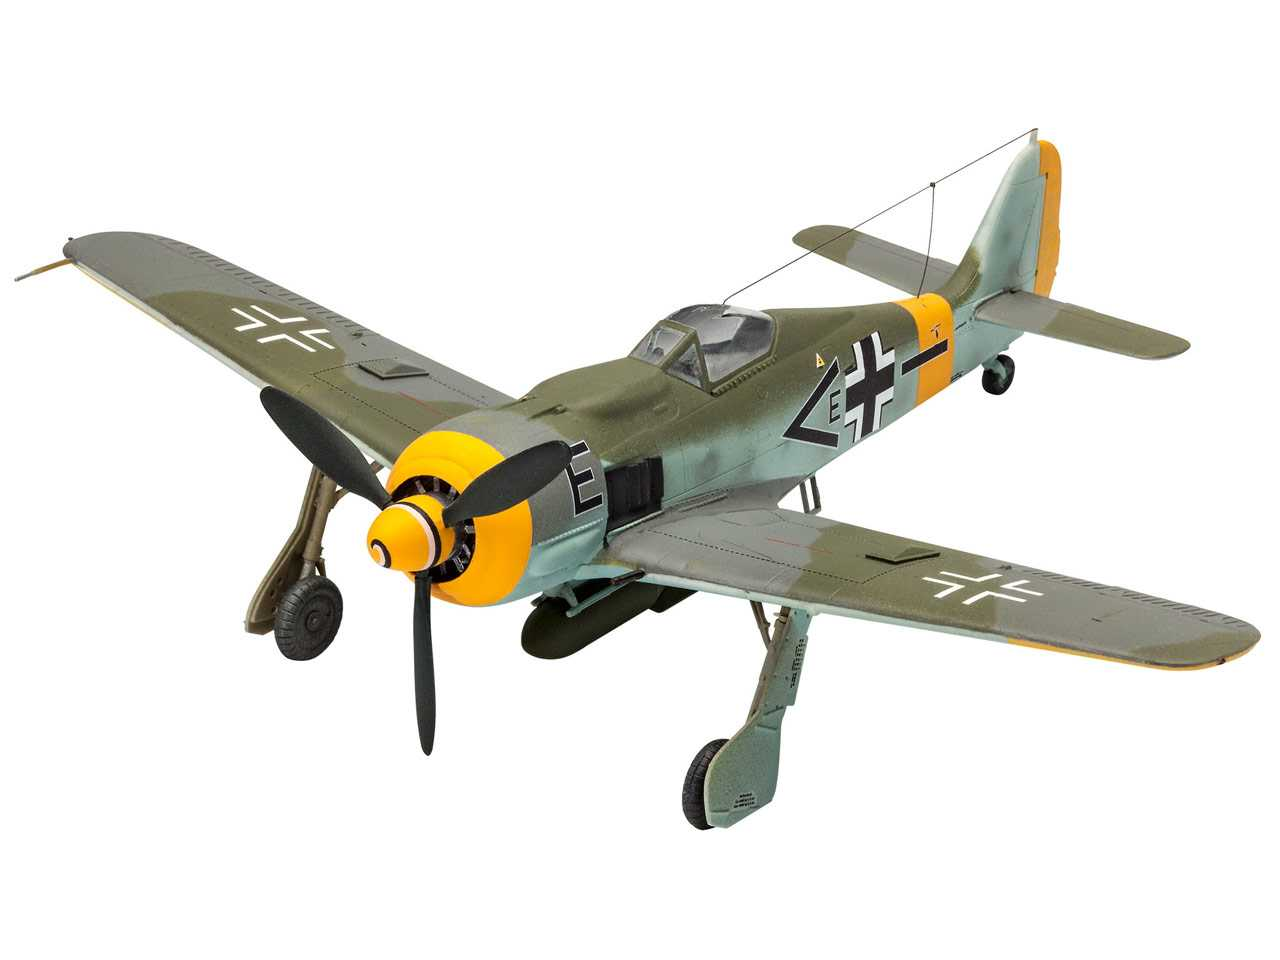 1:72 Focke-Wulf Fw 190 F-8 (Model Set)